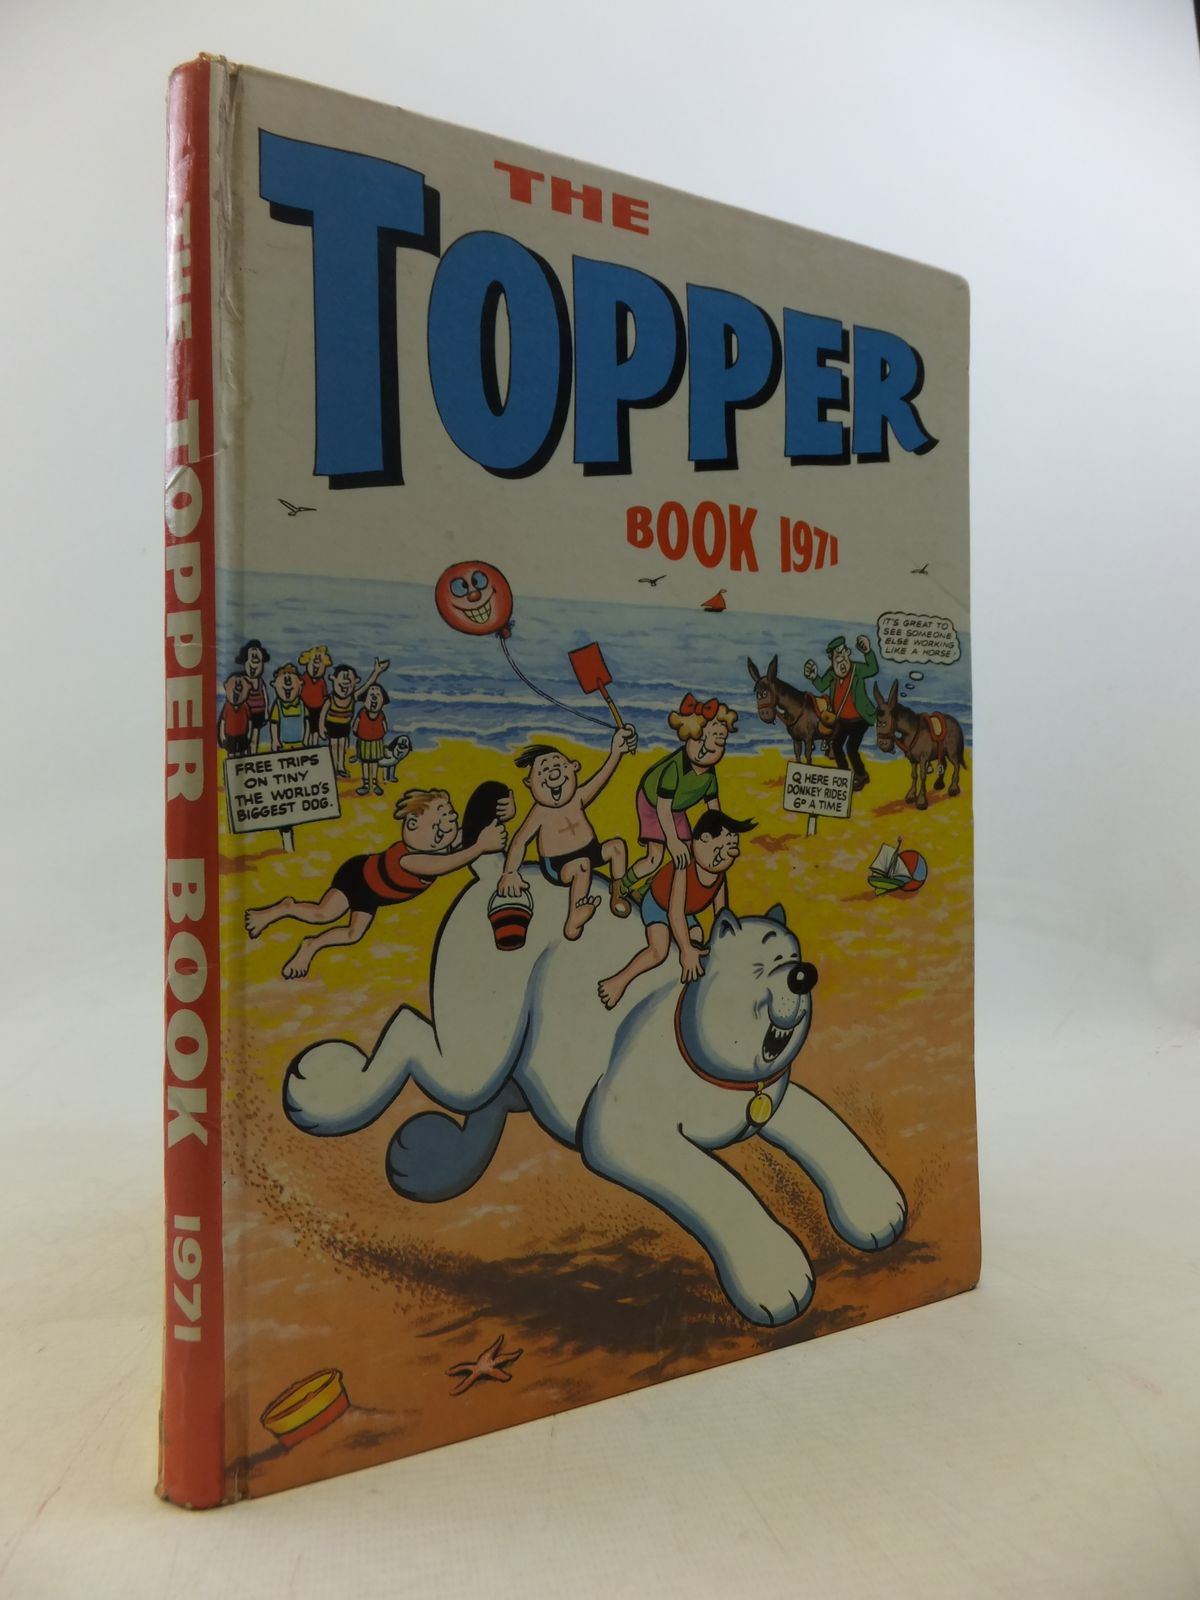 Photo of THE TOPPER BOOK 1971 published by D.C. Thomson & Co Ltd. (STOCK CODE: 1809467)  for sale by Stella & Rose's Books